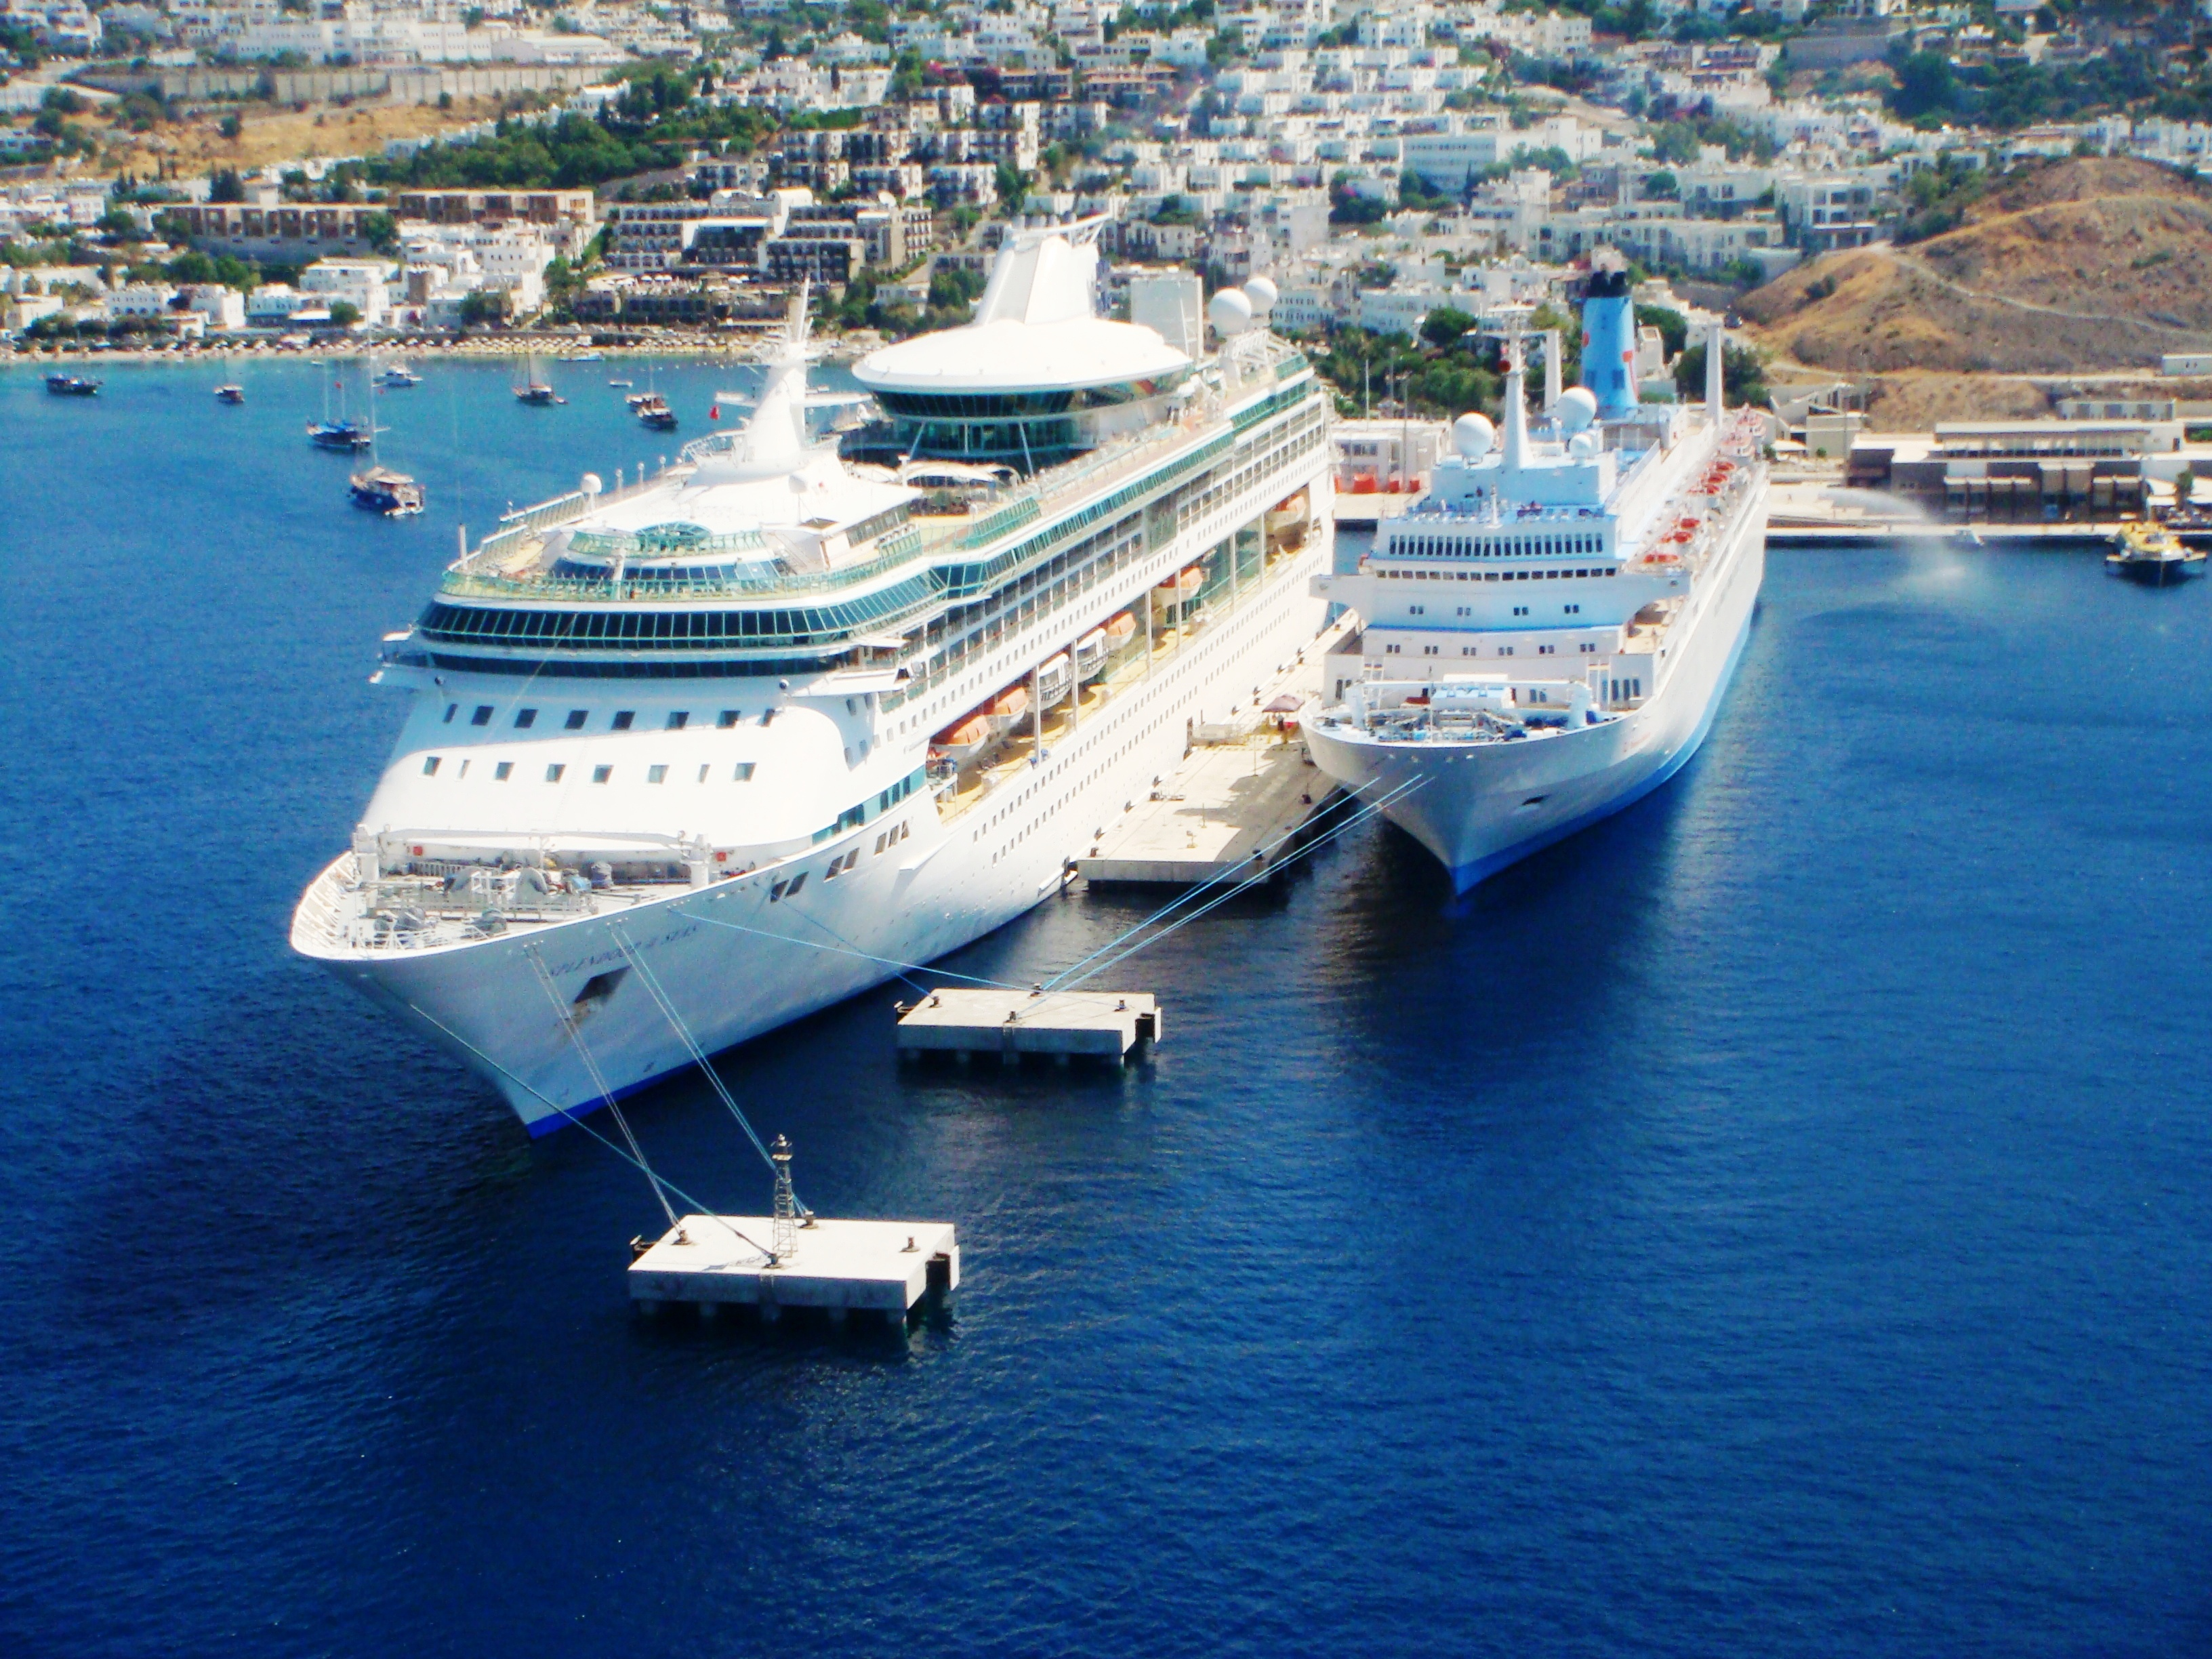 Bodrum Cruise Port Aerial Picture